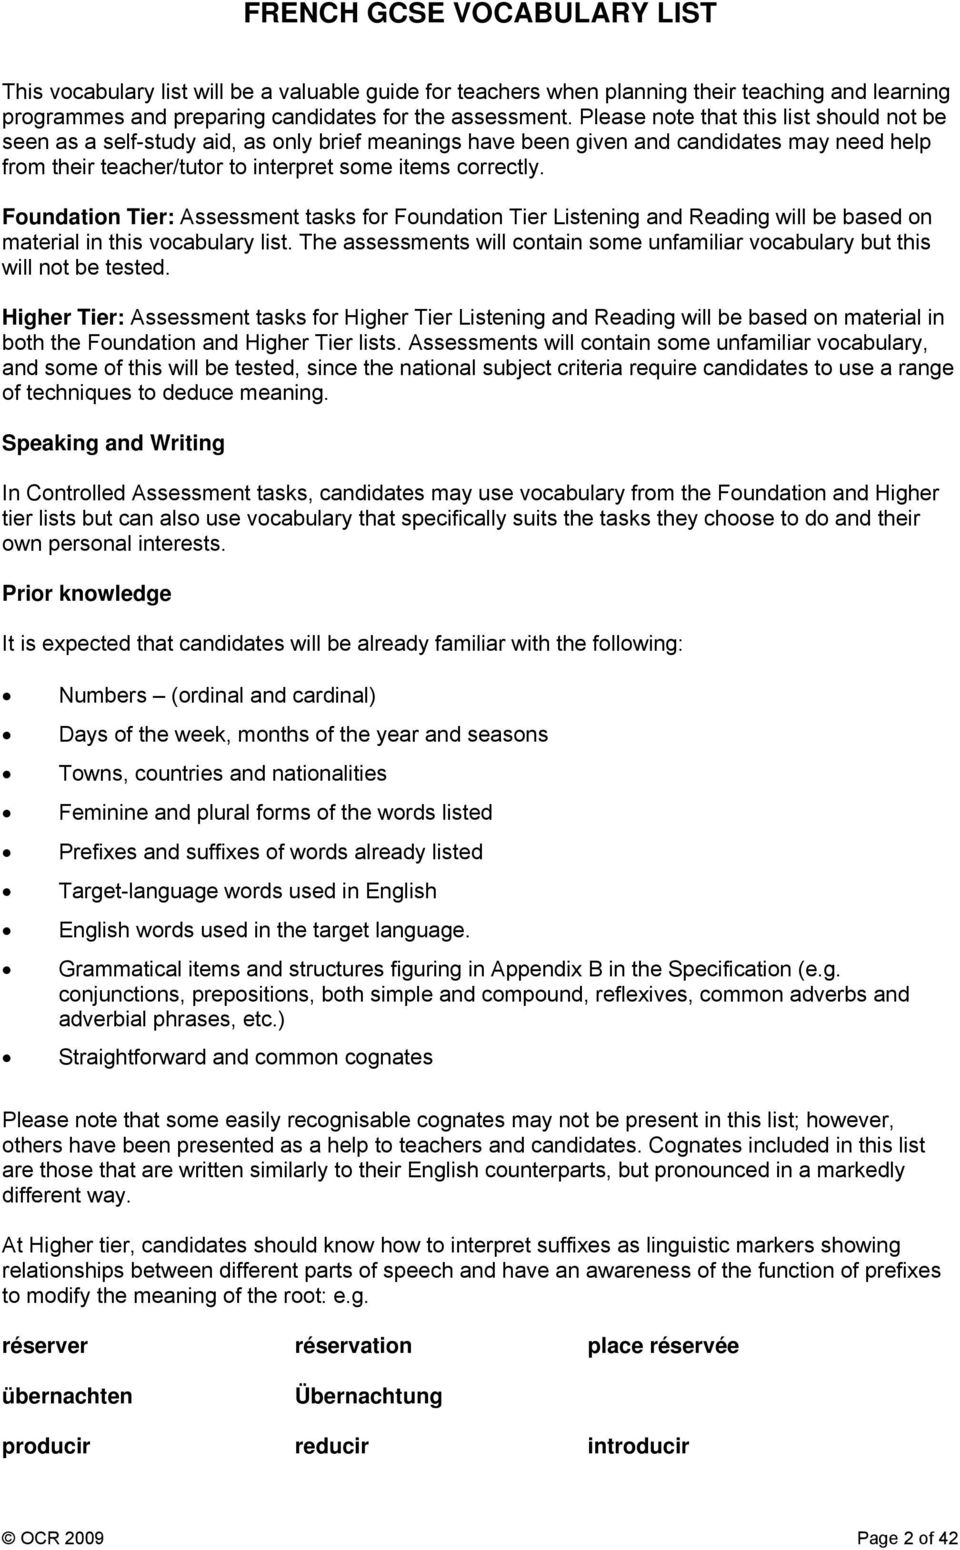 Foundation Tier: Assessment tasks for Foundation Tier Listening and Reading will be based on material in this vocabulary list.